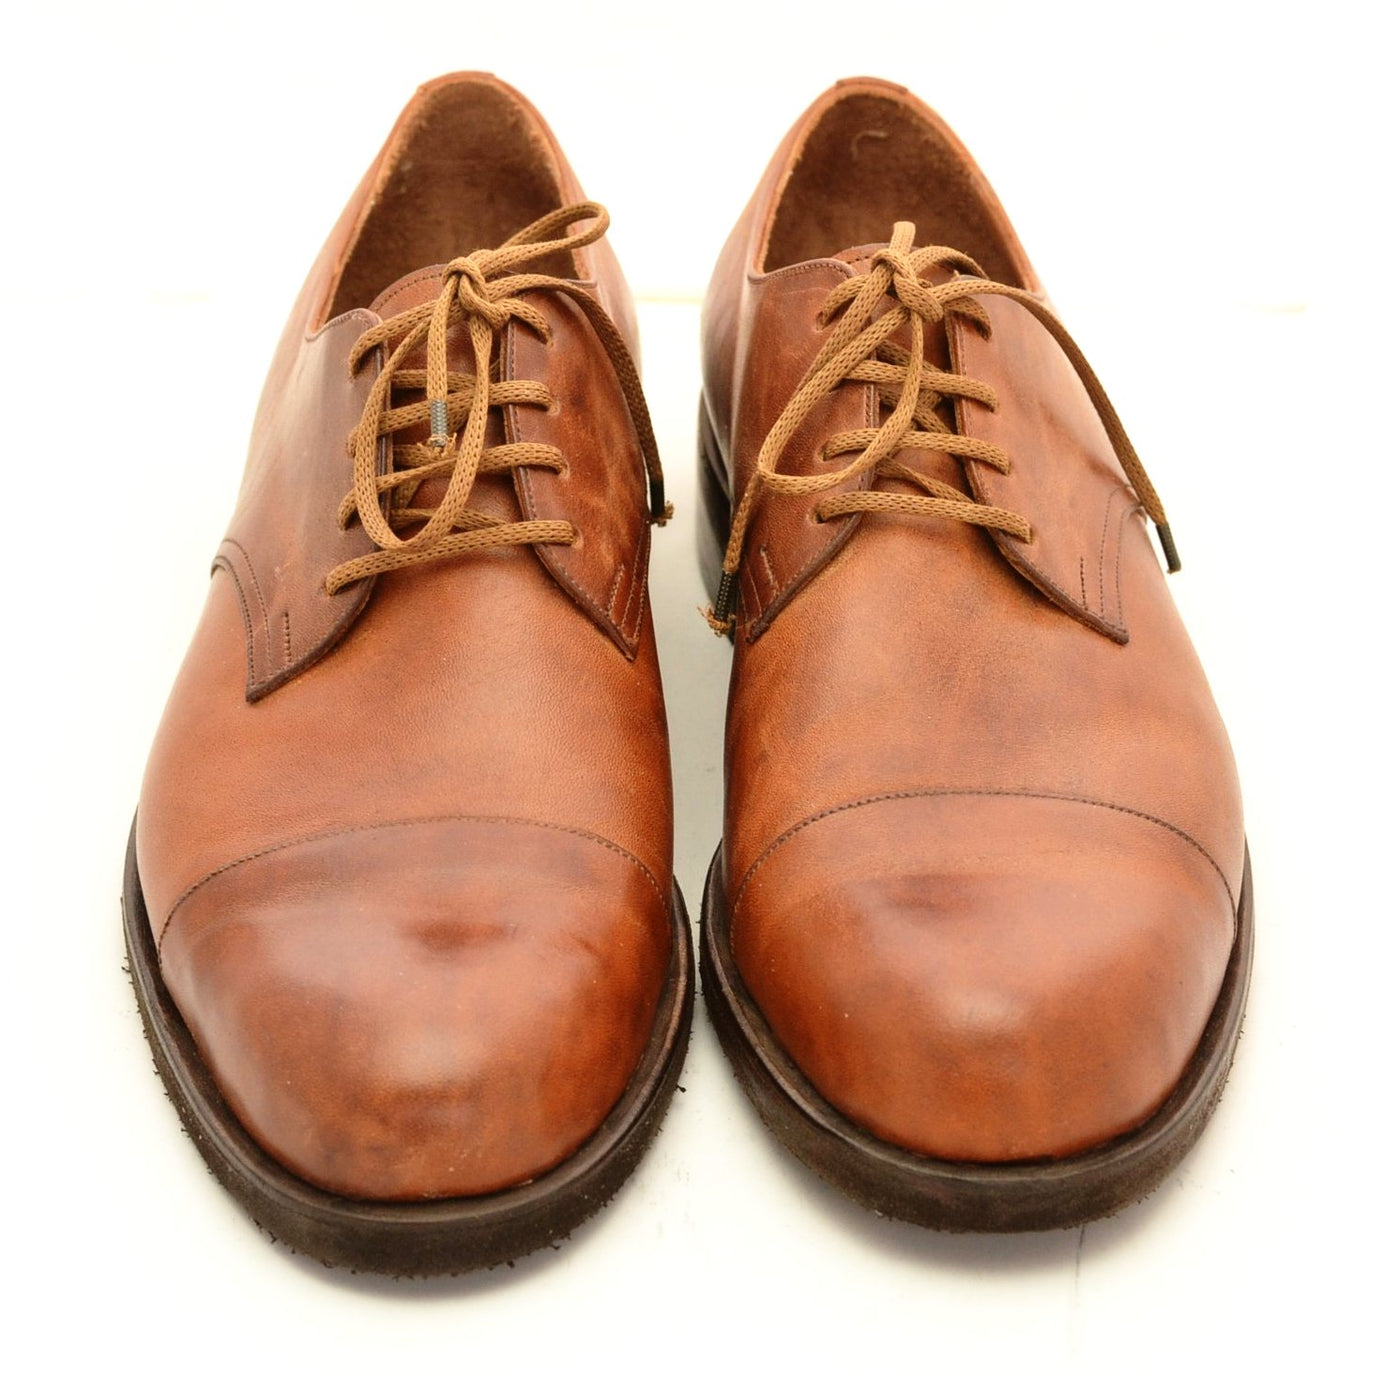 Derby toe cap shoe / tan cordovan